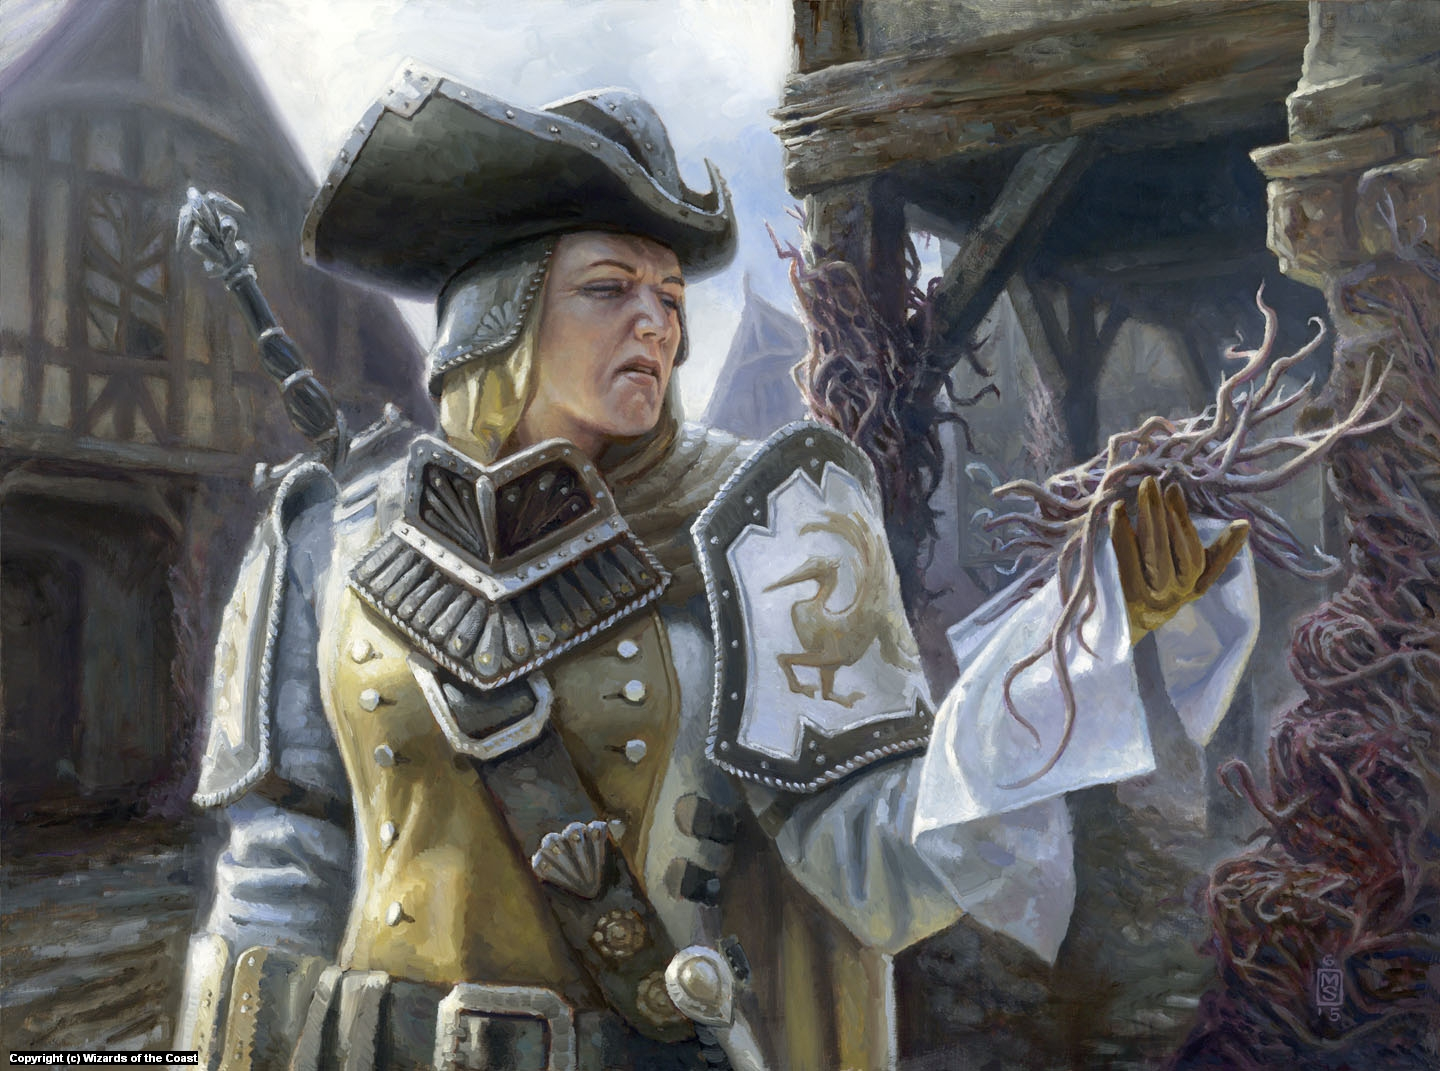 Introducing Lurrus Death And Taxes To Modern